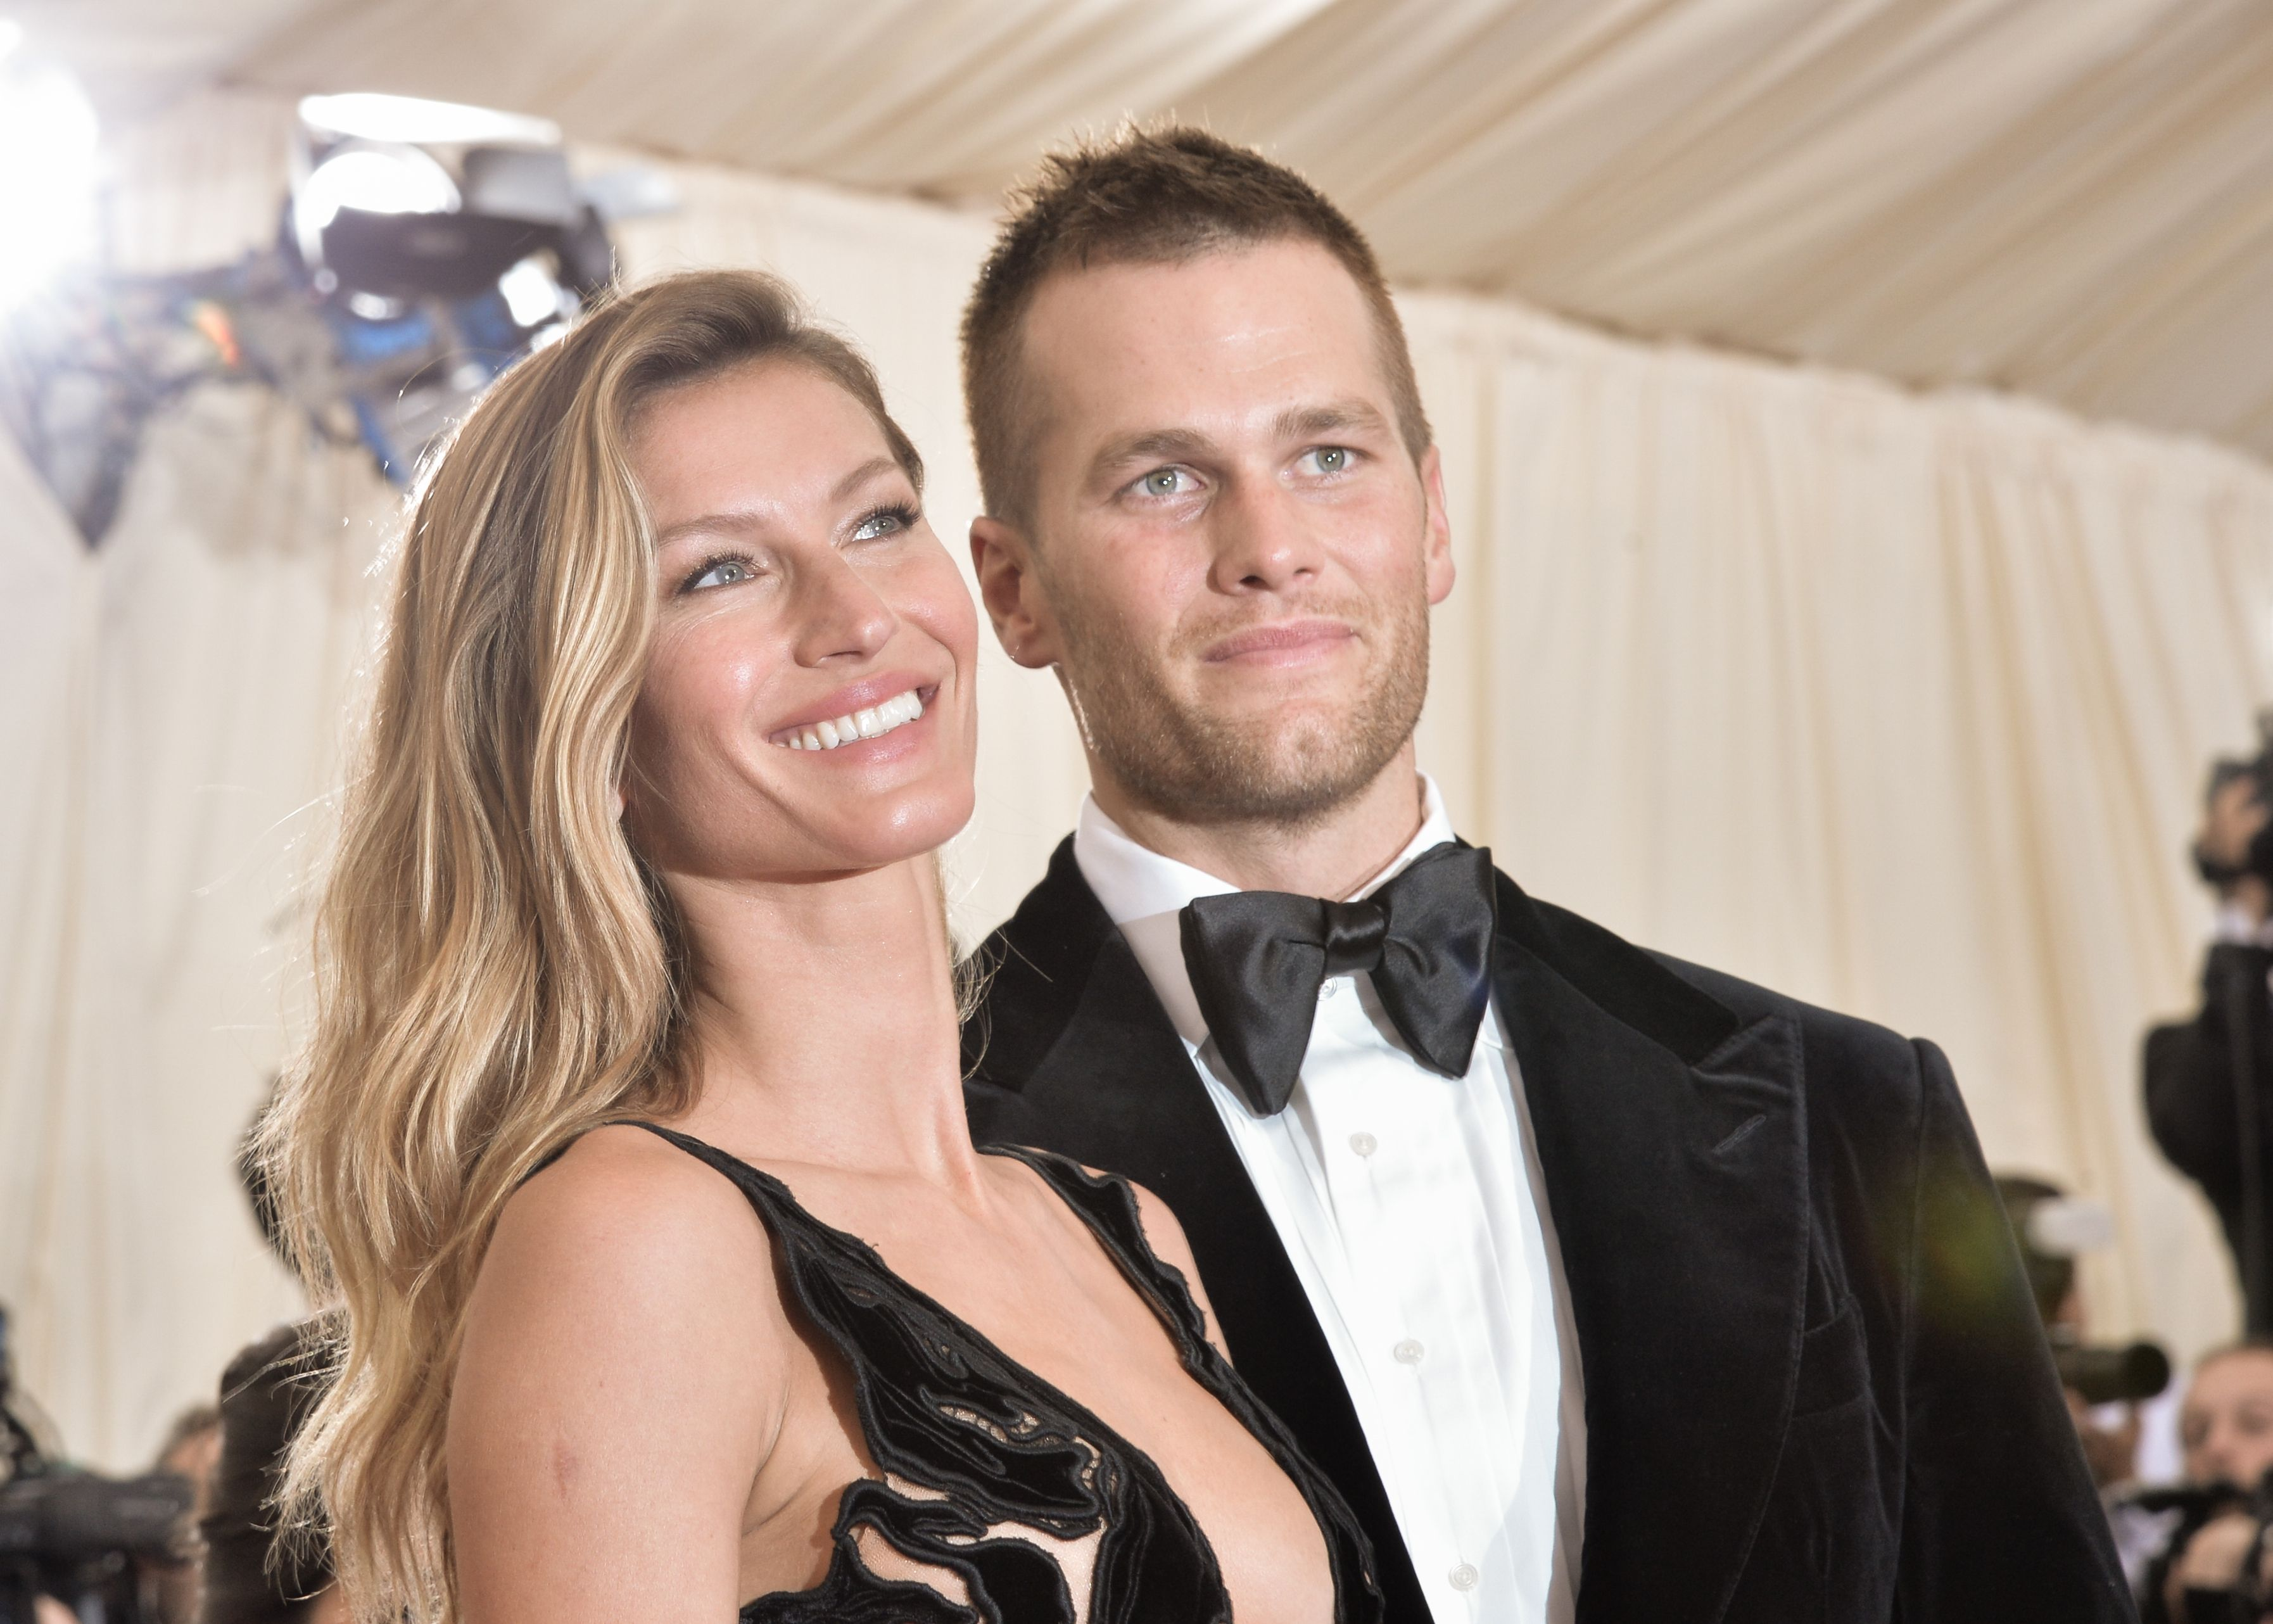 Gisele Bündchen Shares Rare Intimate Details About Her